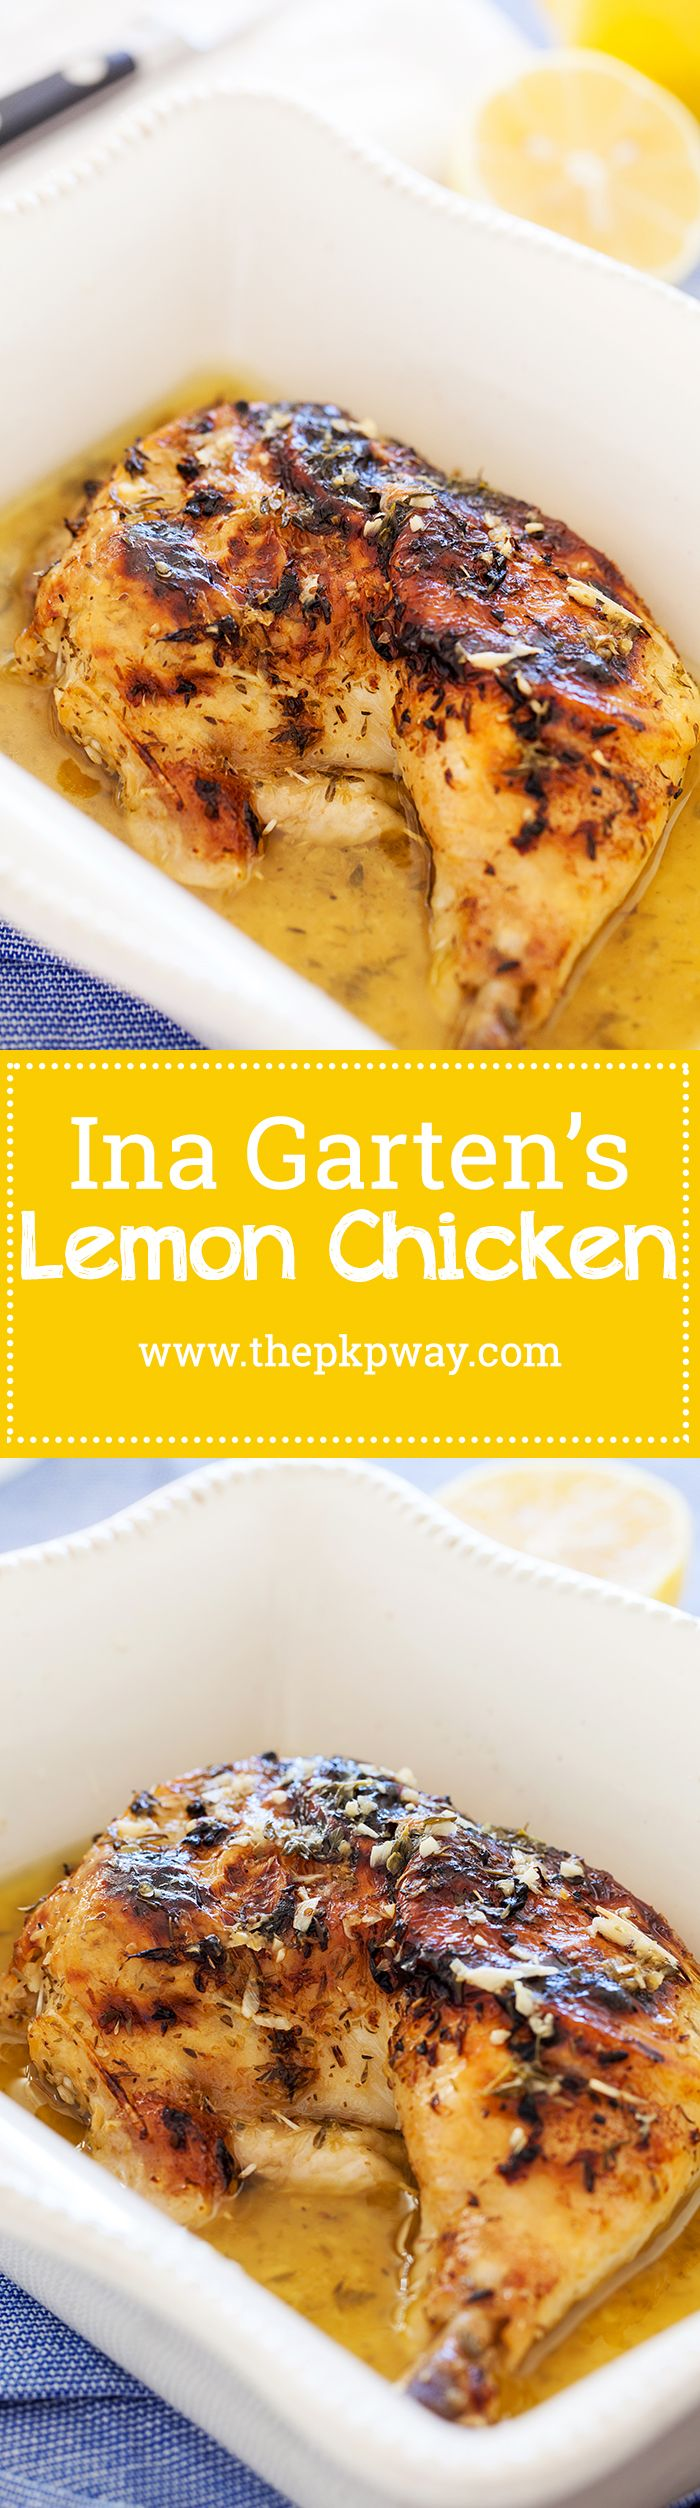 Ina's lemon chicken is a no fuss dish that's comforting, familiar, and utterly satisfying. Make ahead of time or right before serving.